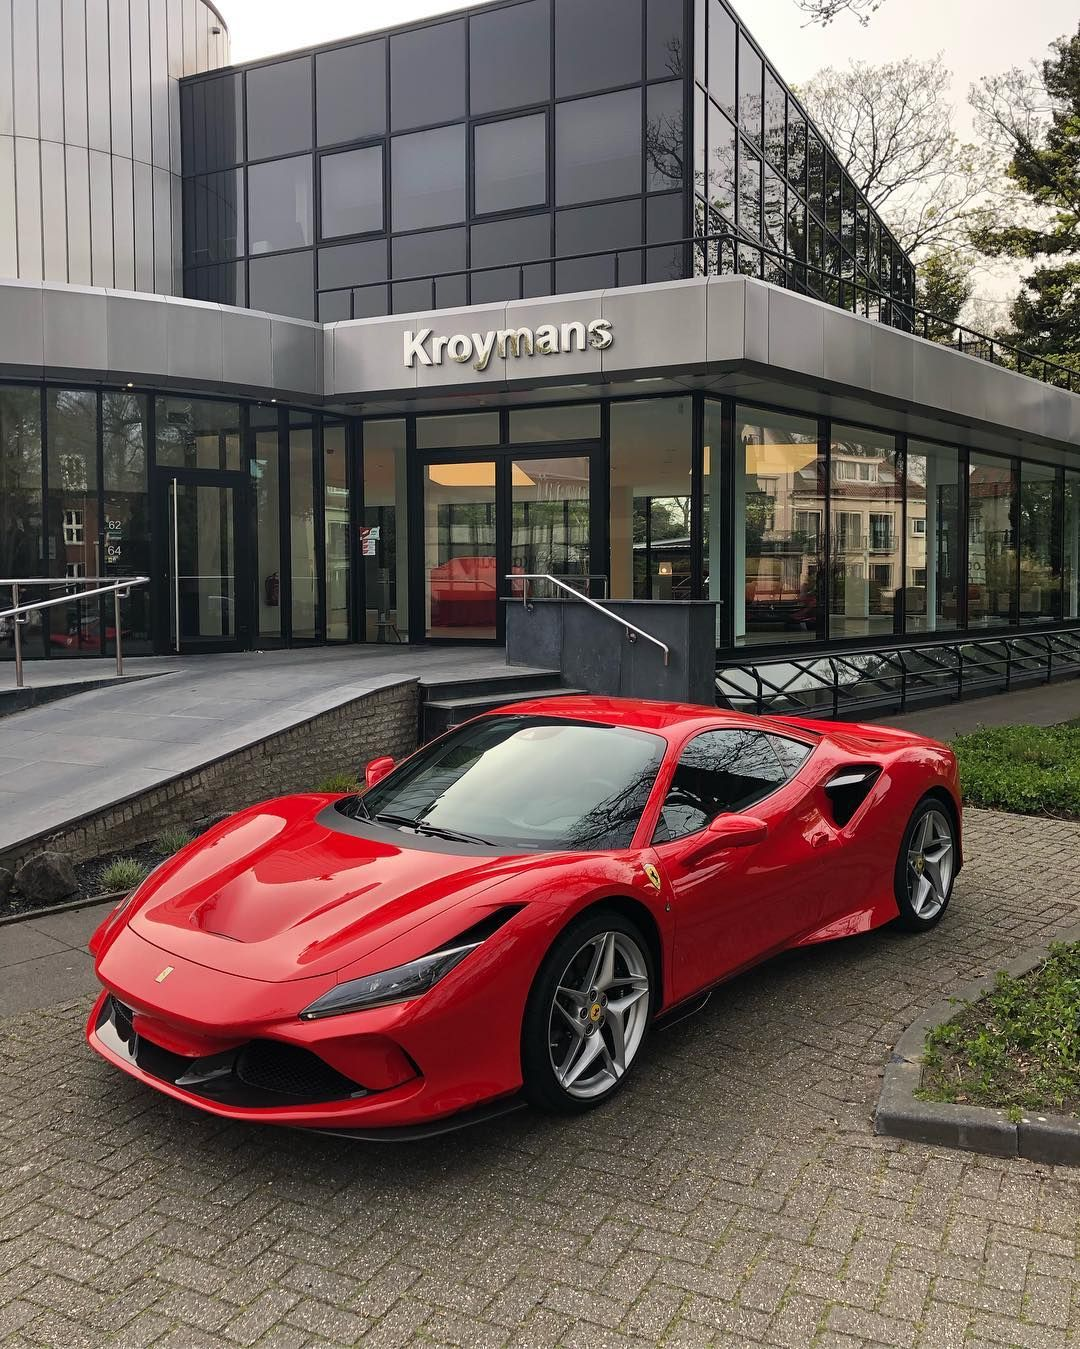 The Ferrari F8 Tributo Has Arrived Ferrari F8tributo Kroymans New Ferrari Super Cars Ferrari Car